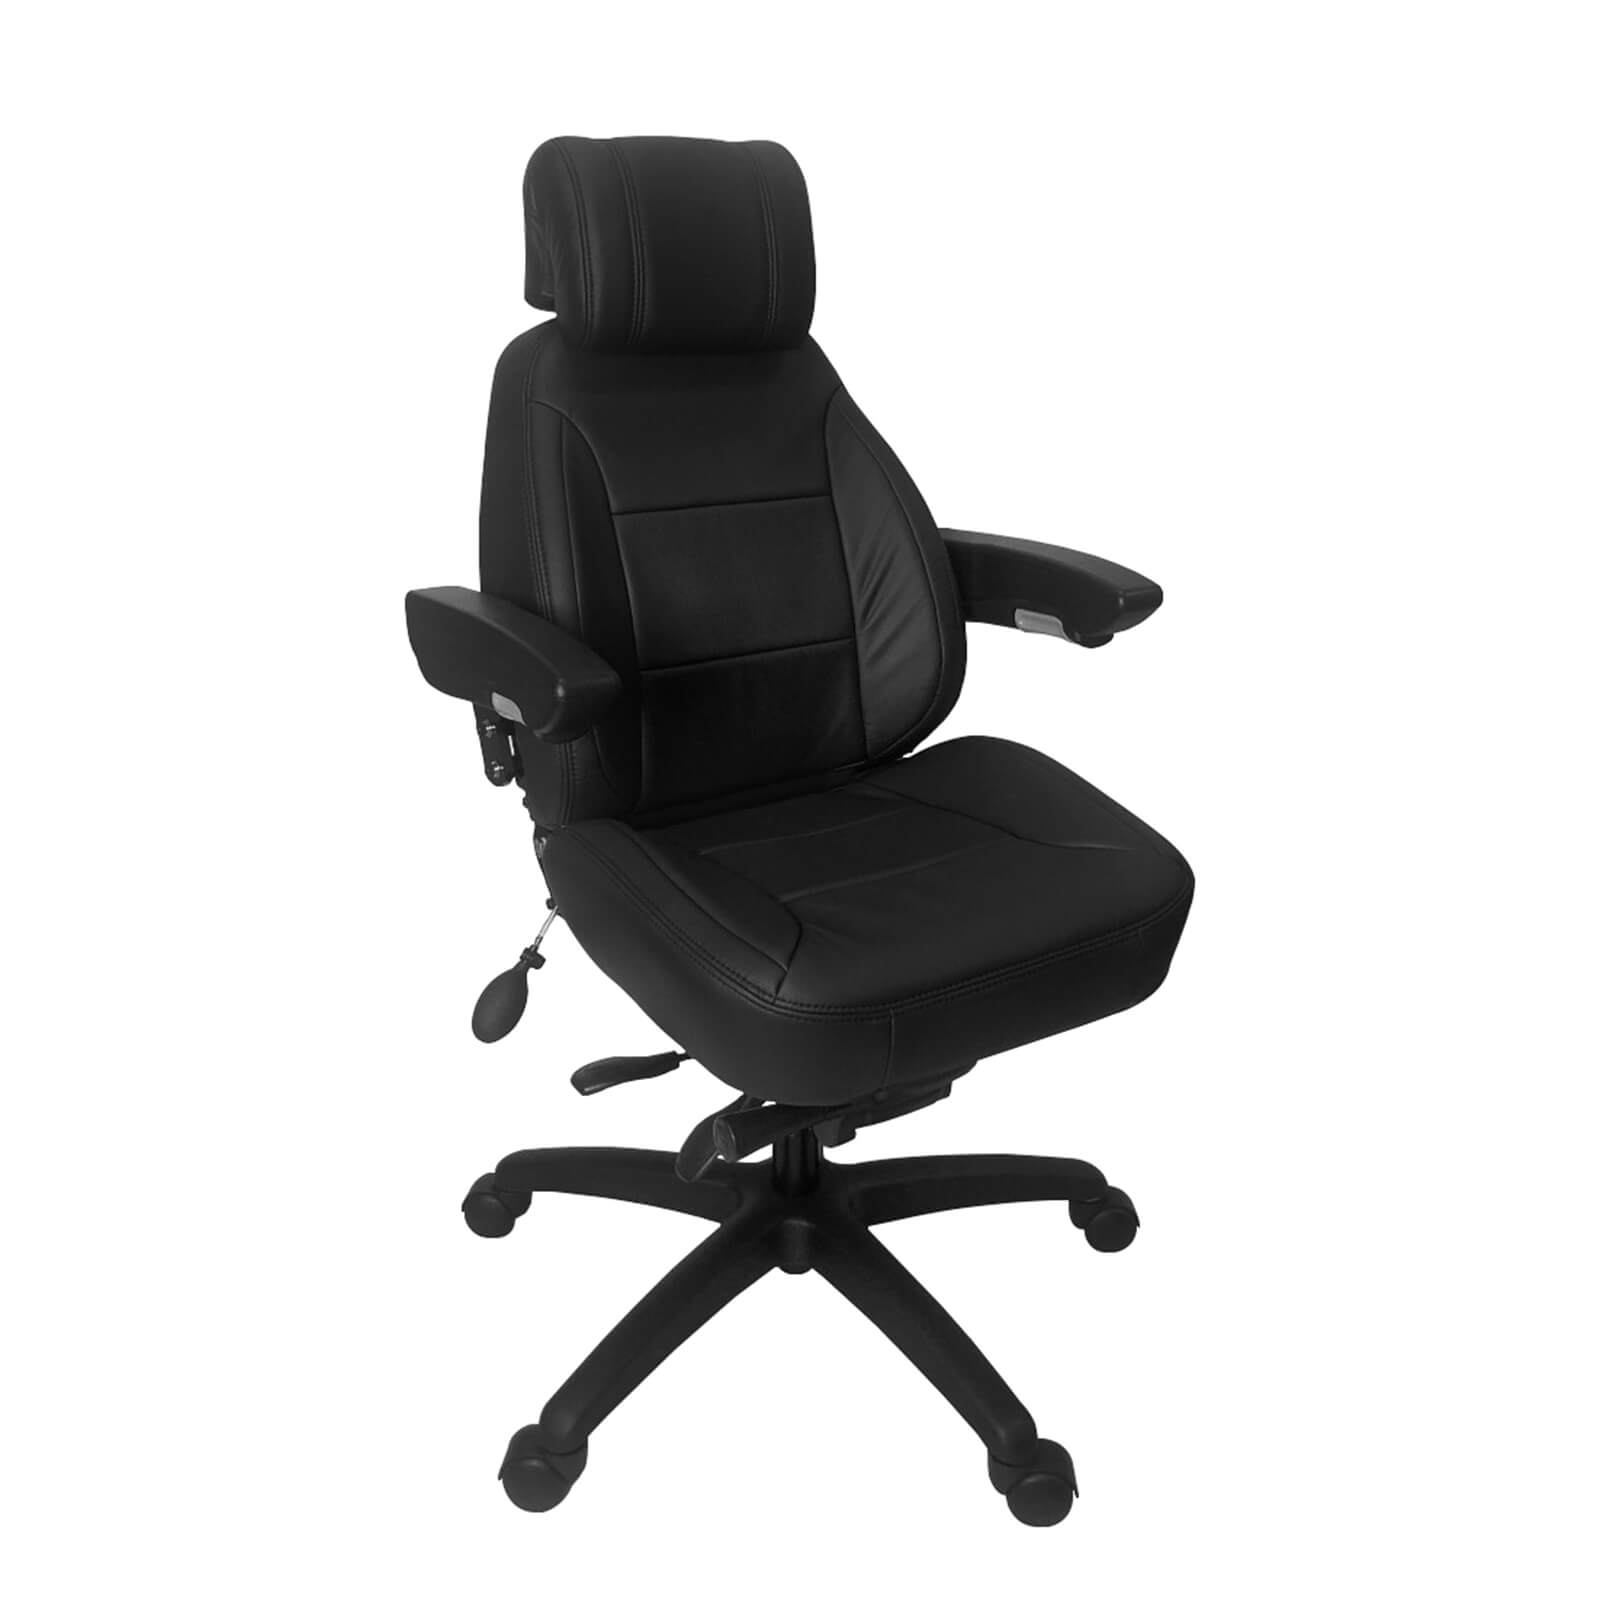 Iron Horse Chairs - 2000 Model